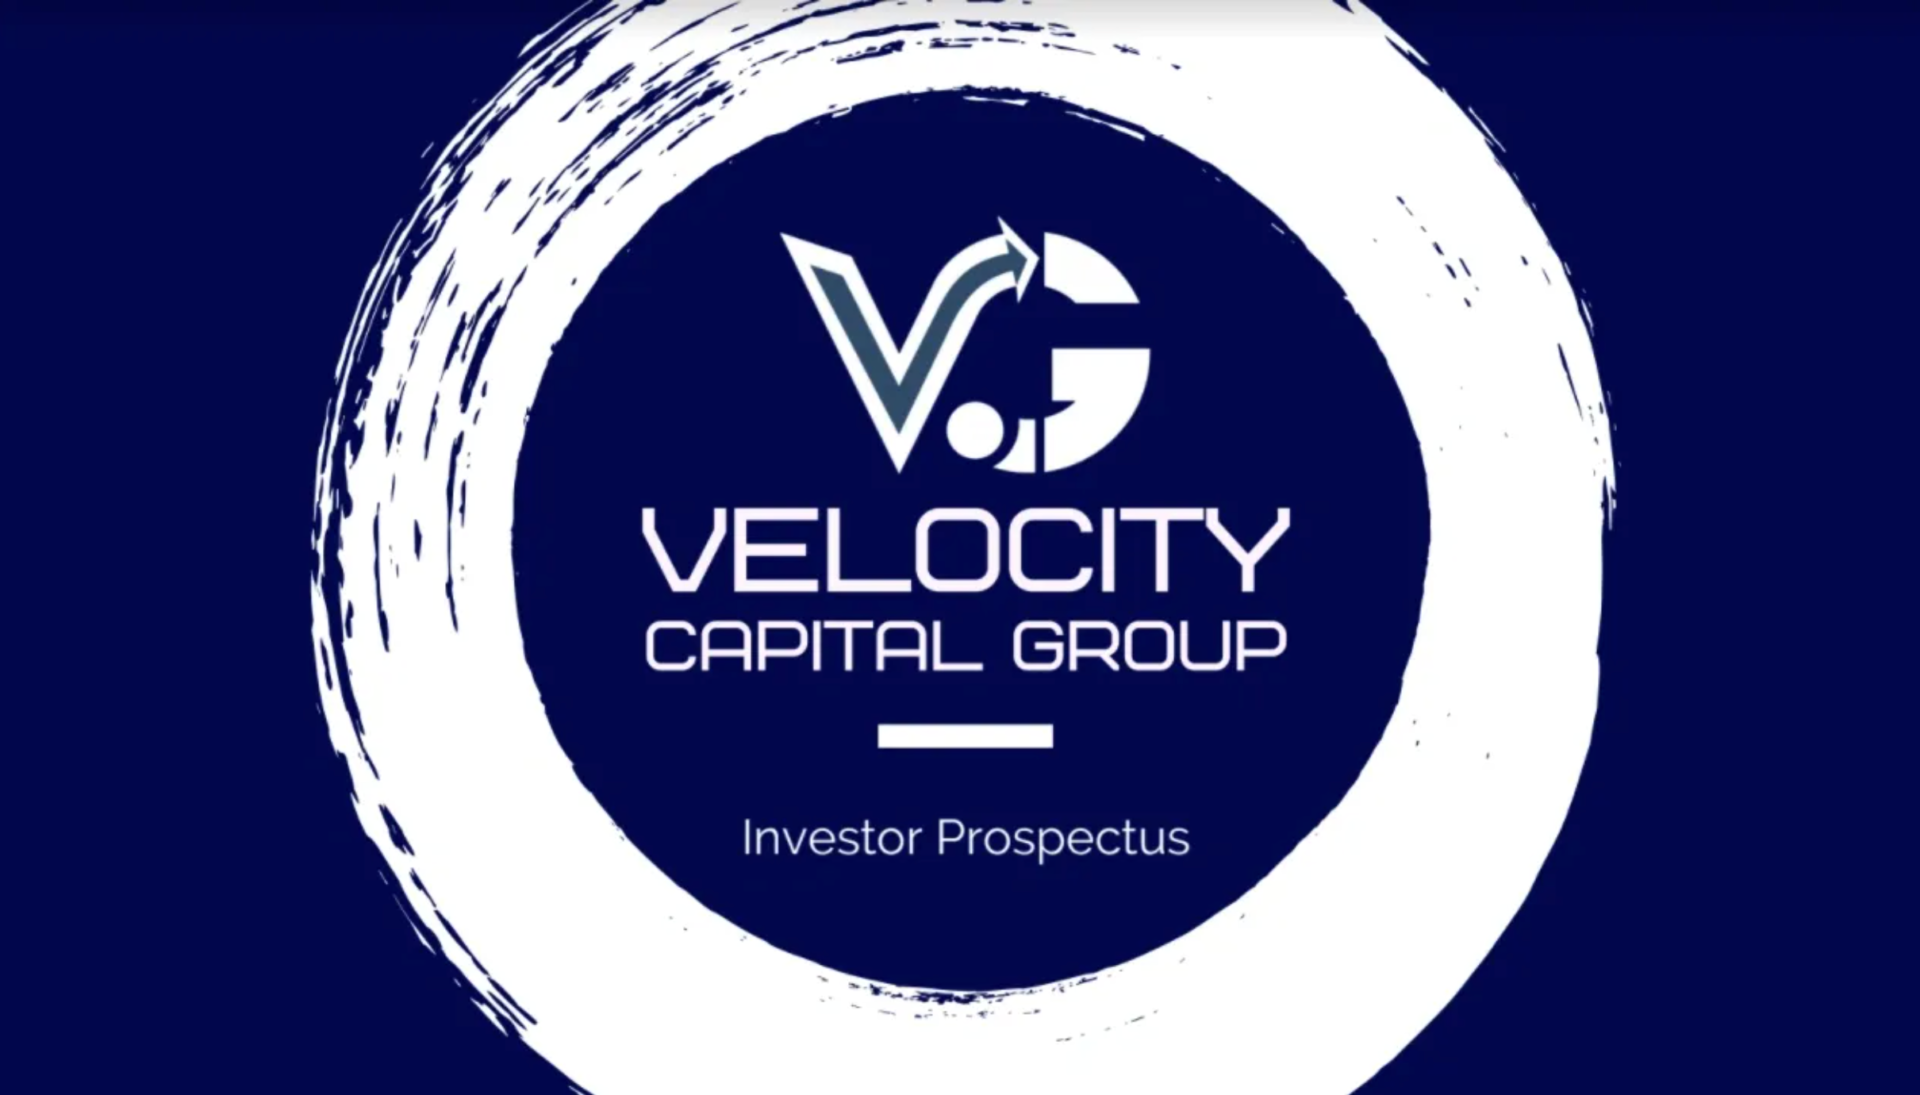 Investment Opportunity From Velocity Capital Group